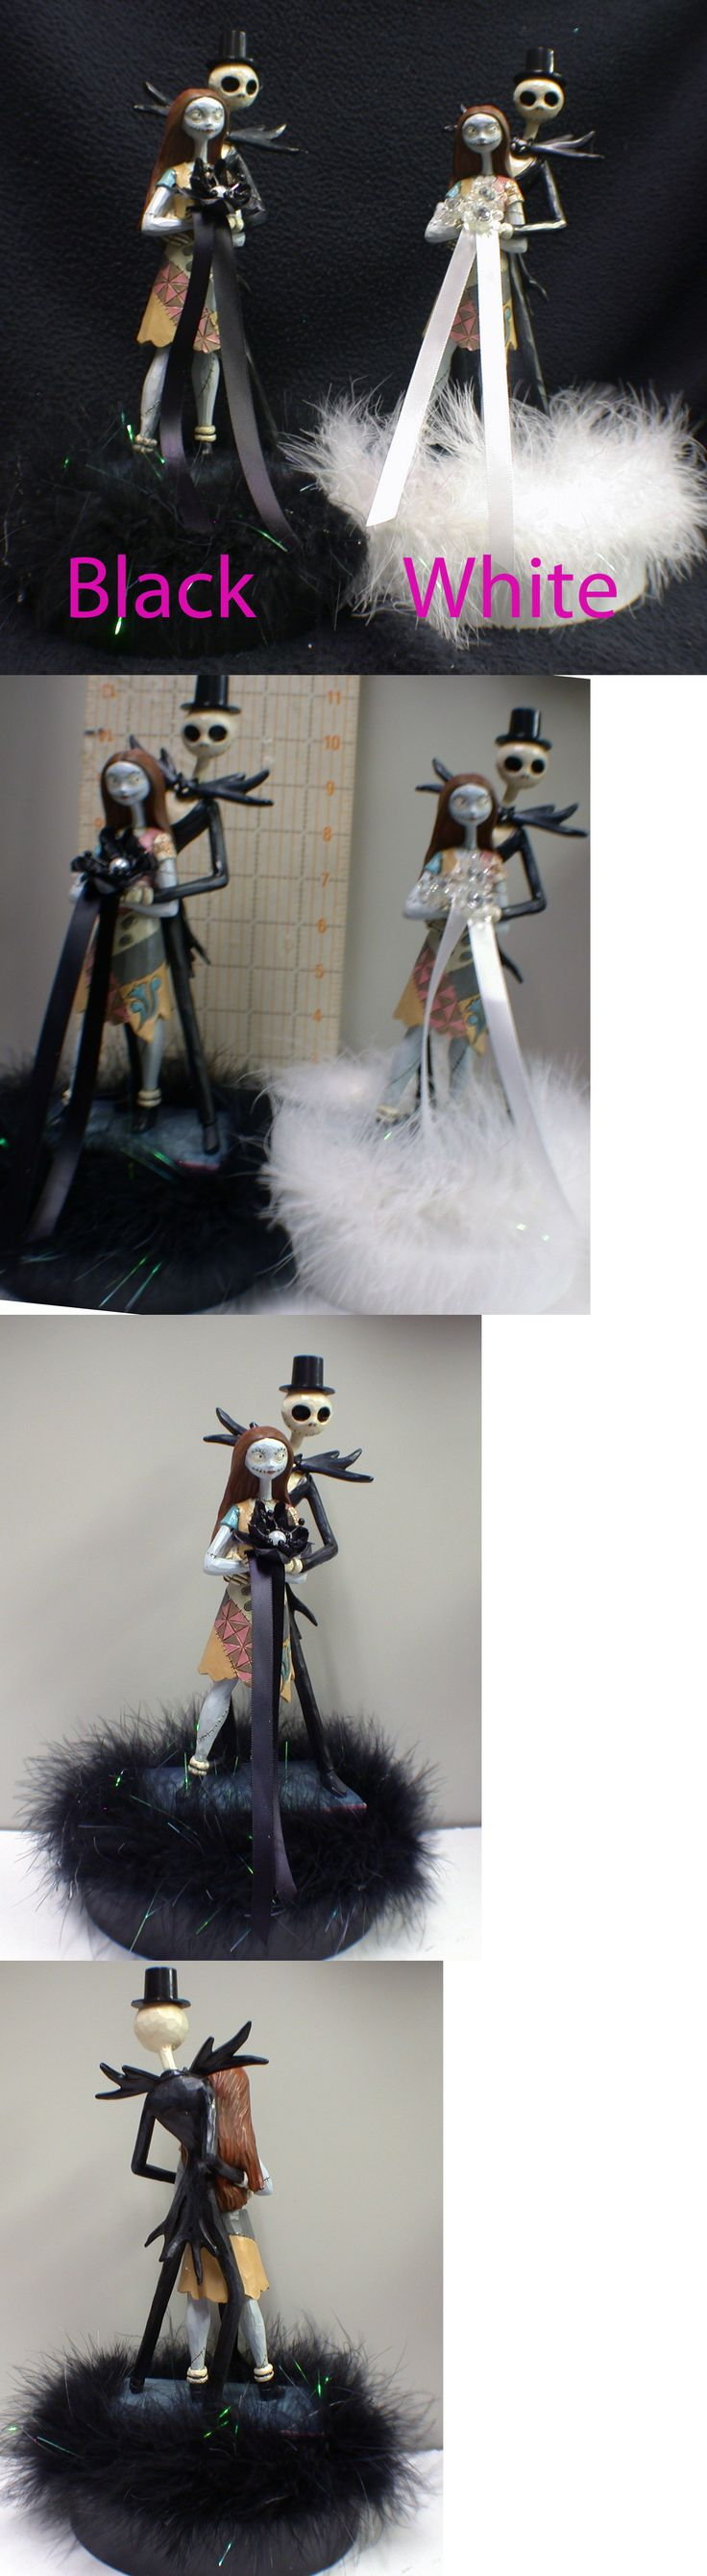 Wedding Cakes Toppers: Nightmare Before Christmas Wedding Cake Topper Groom Top Centerepiece Halloween -> BUY IT NOW ONLY: $92 on eBay!